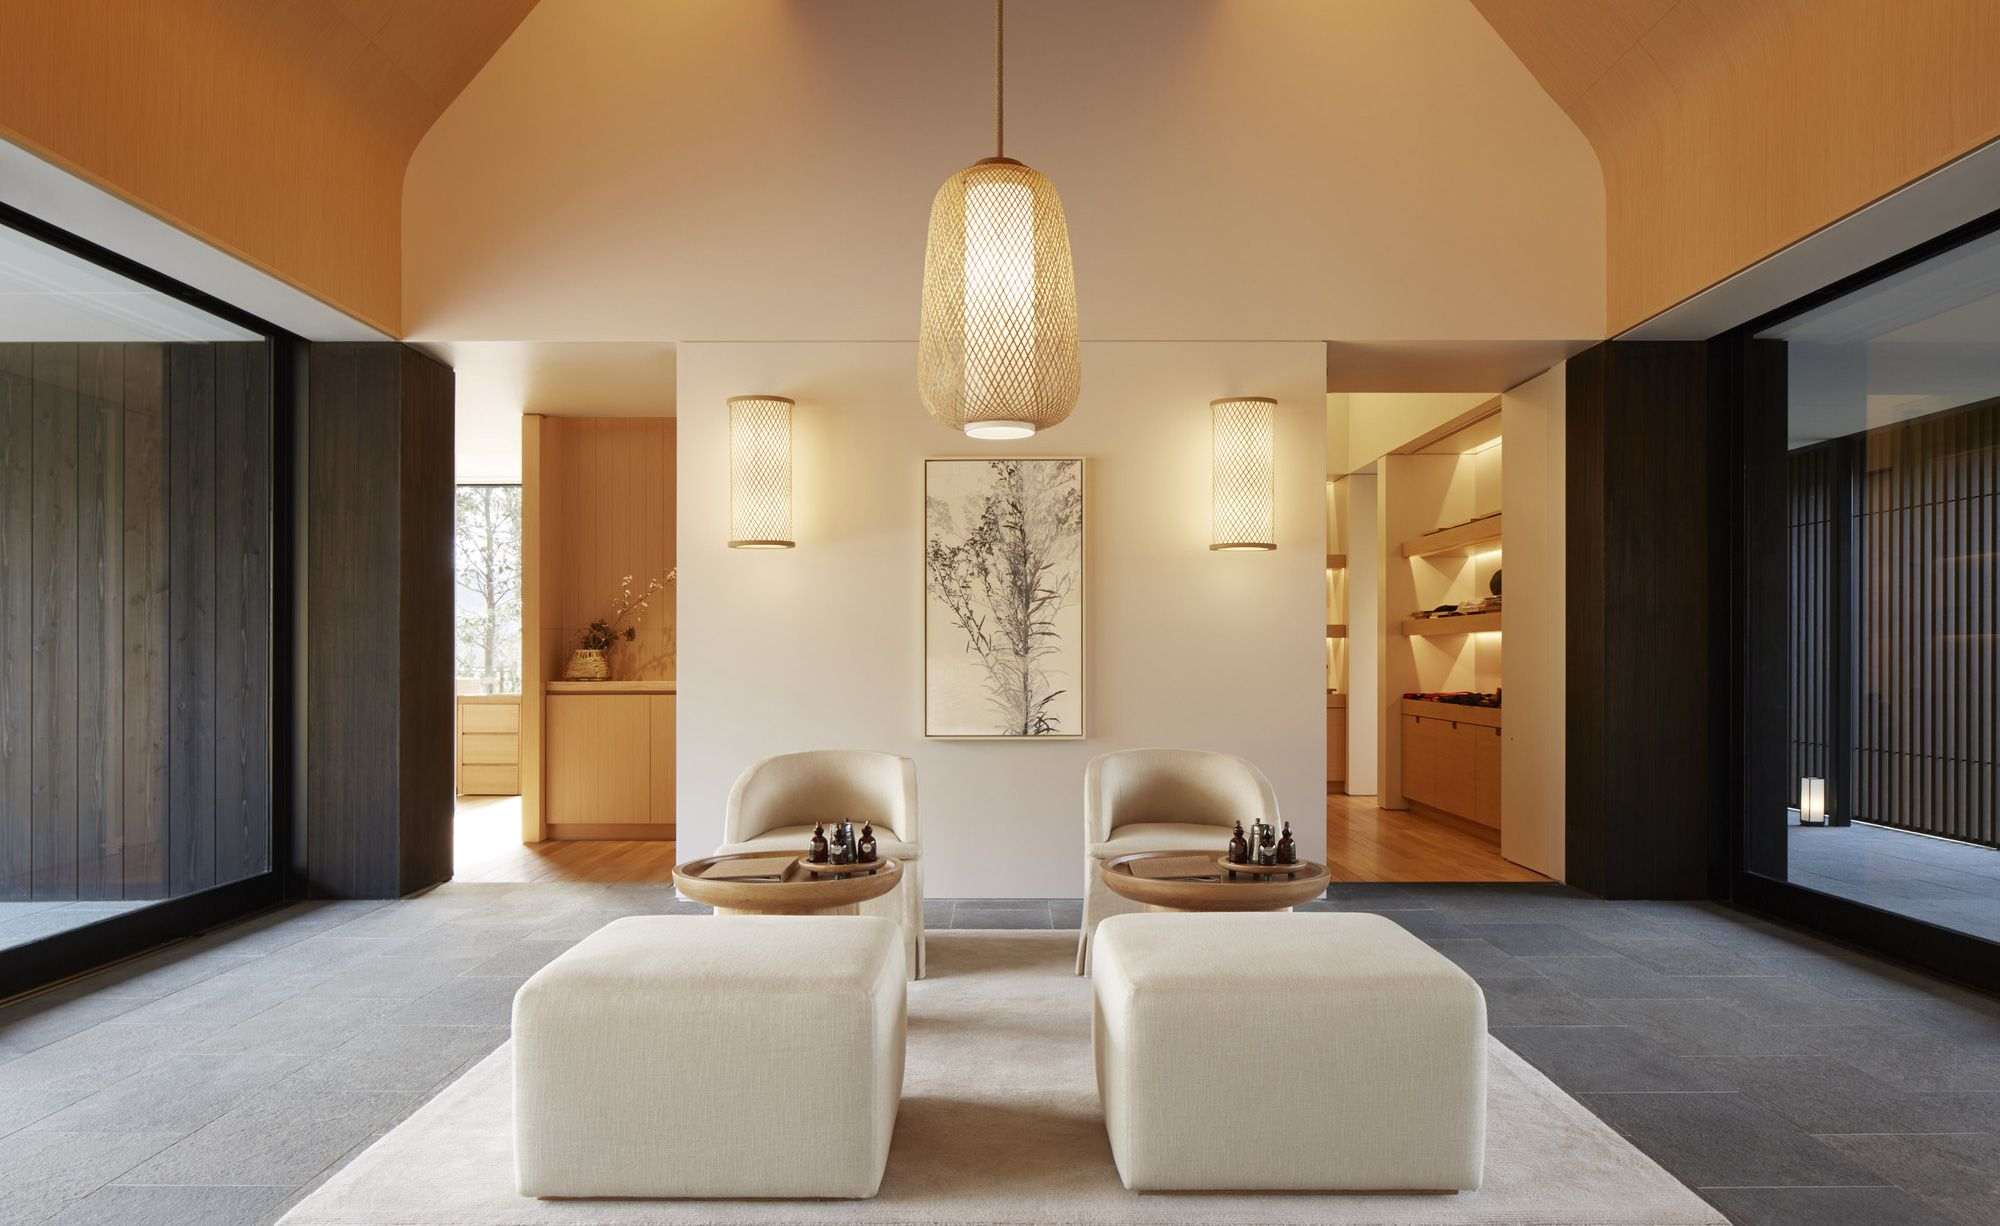 Amanemu shima japan minimalist spa design hotel for Design hotel japan